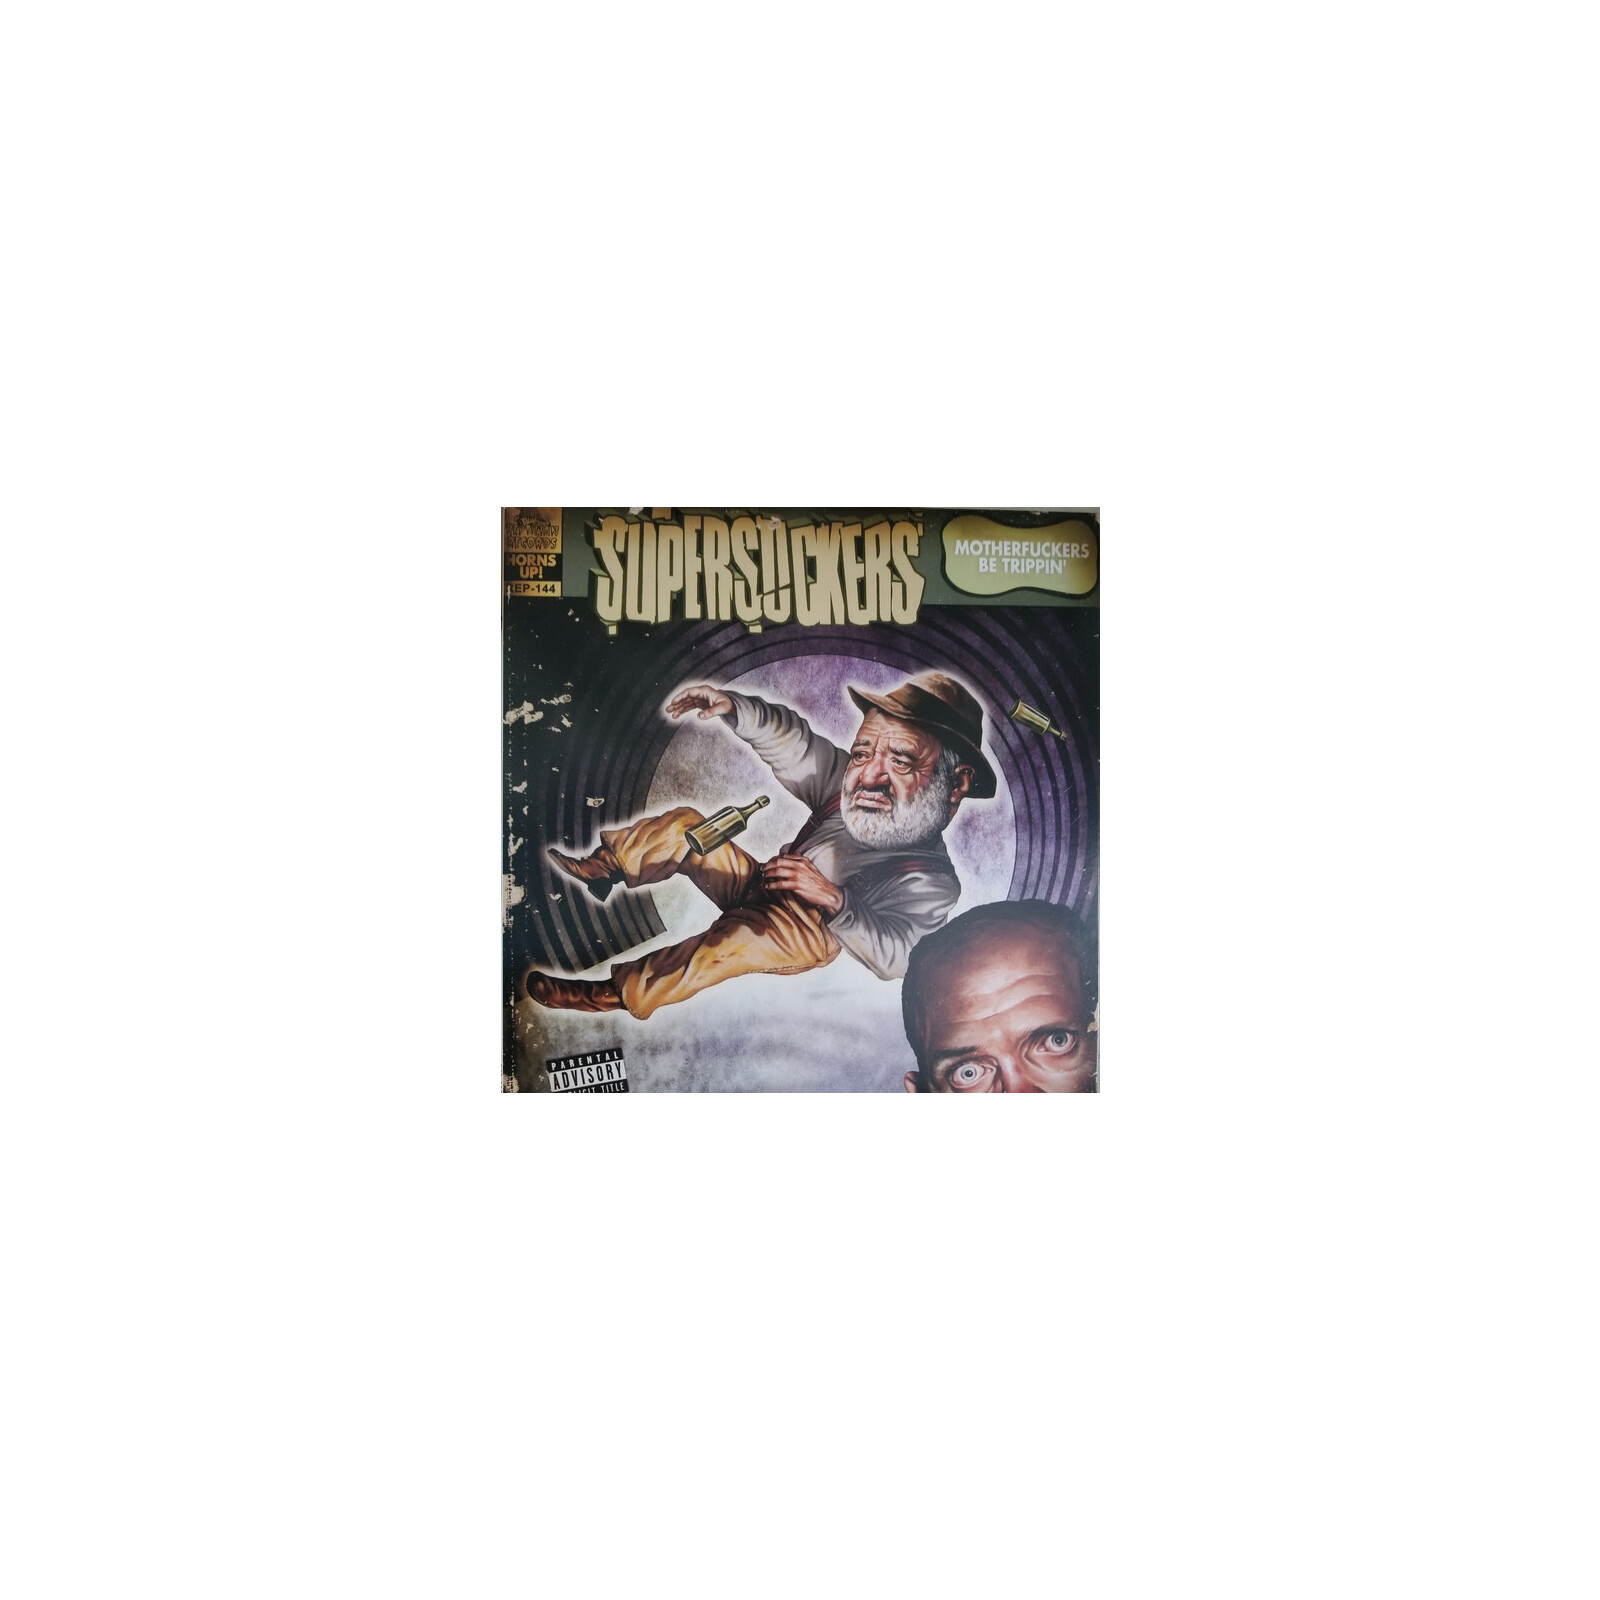 SUPERSUCKERS - MOTHERFUCKERS BE TRIPPIN' REMASTERED VINYL